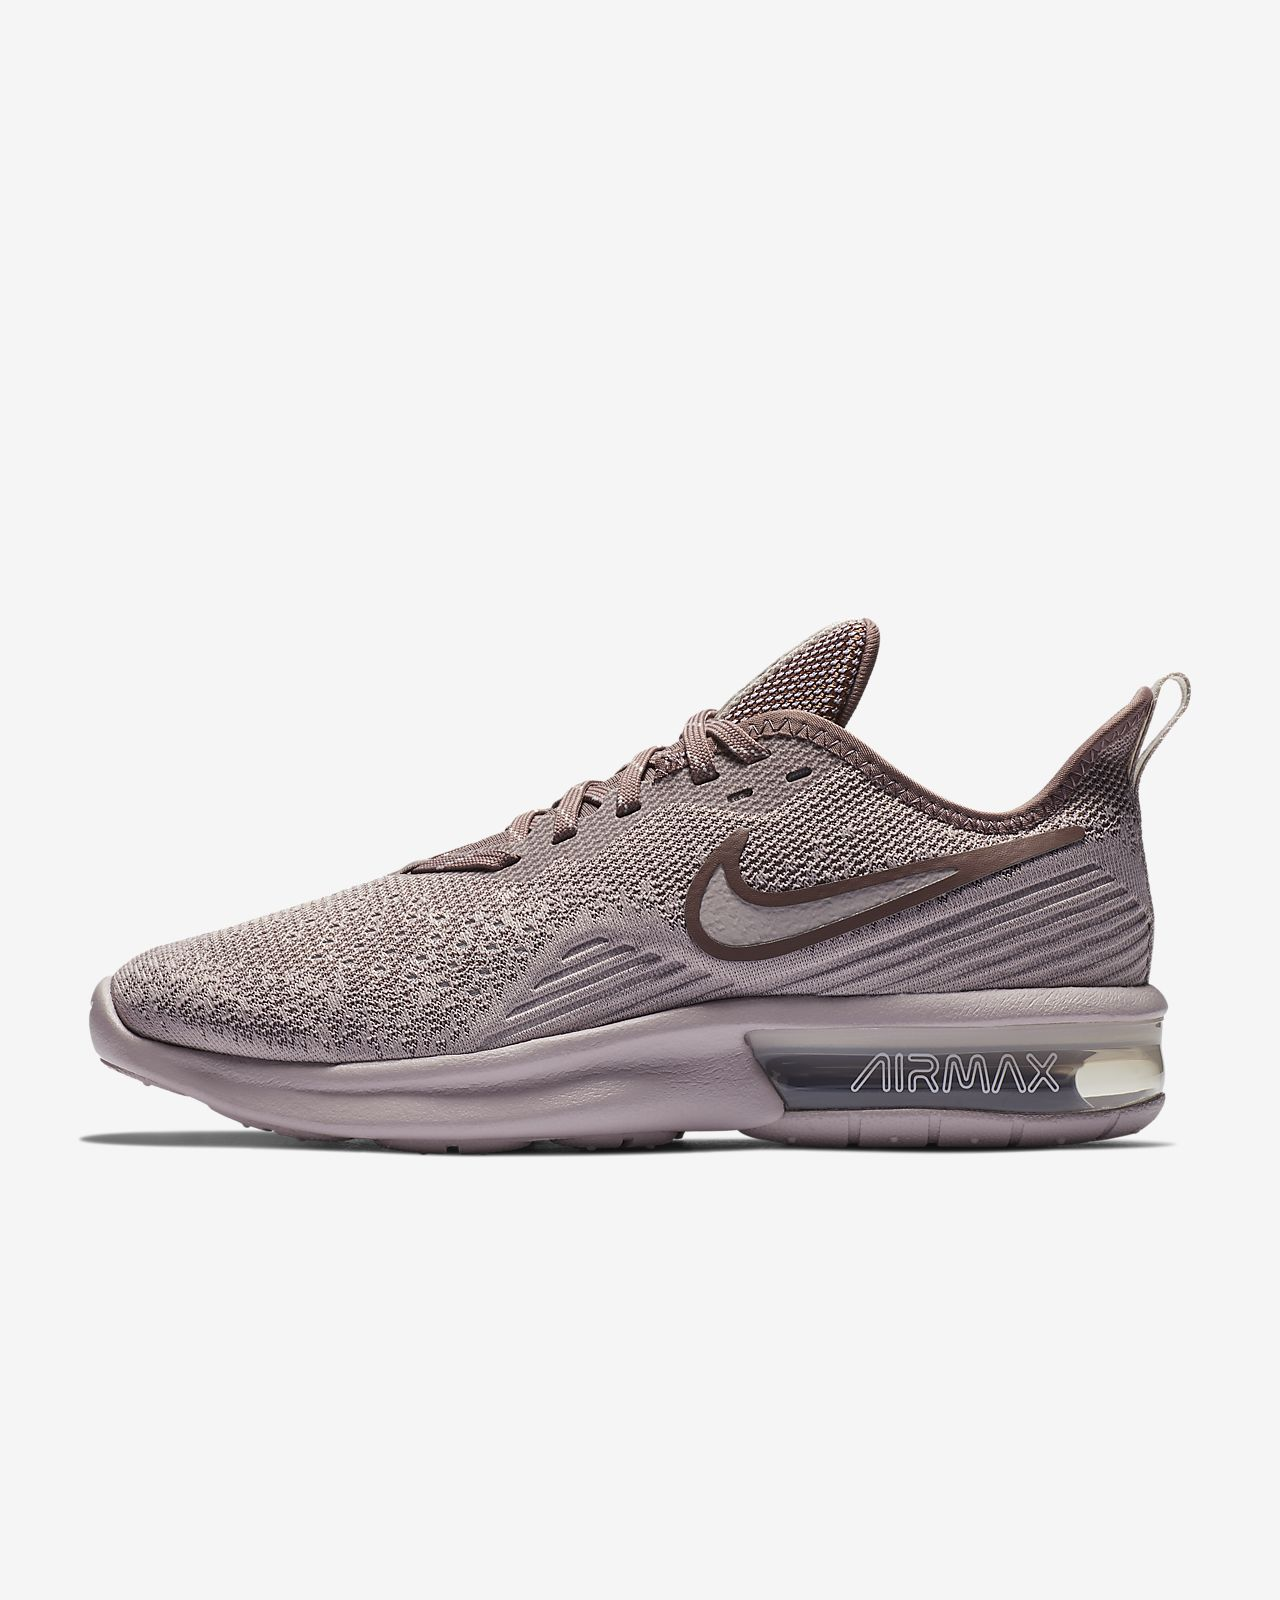 separation shoes d8183 0ea18 ... Chaussure Nike Air Max Sequent 4 pour Femme